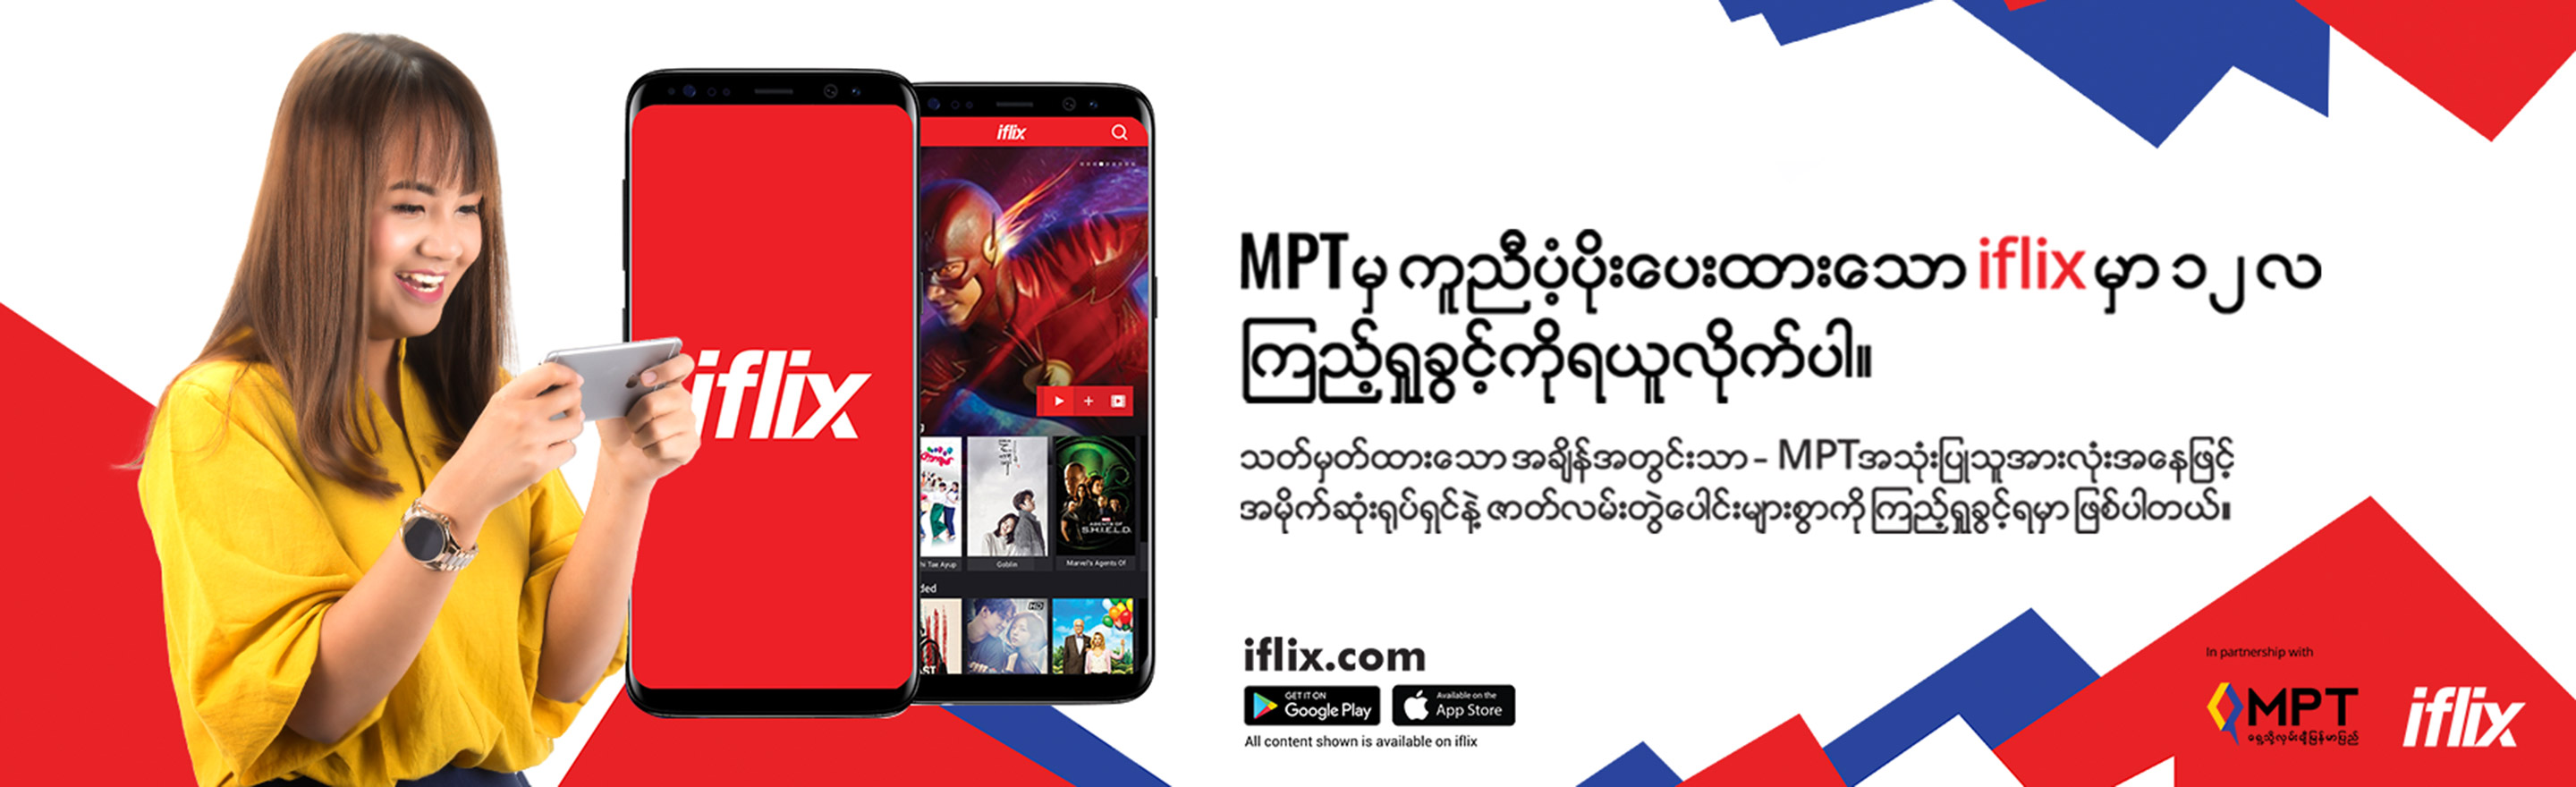 MPT iflix myanmar streaming video VOD movies